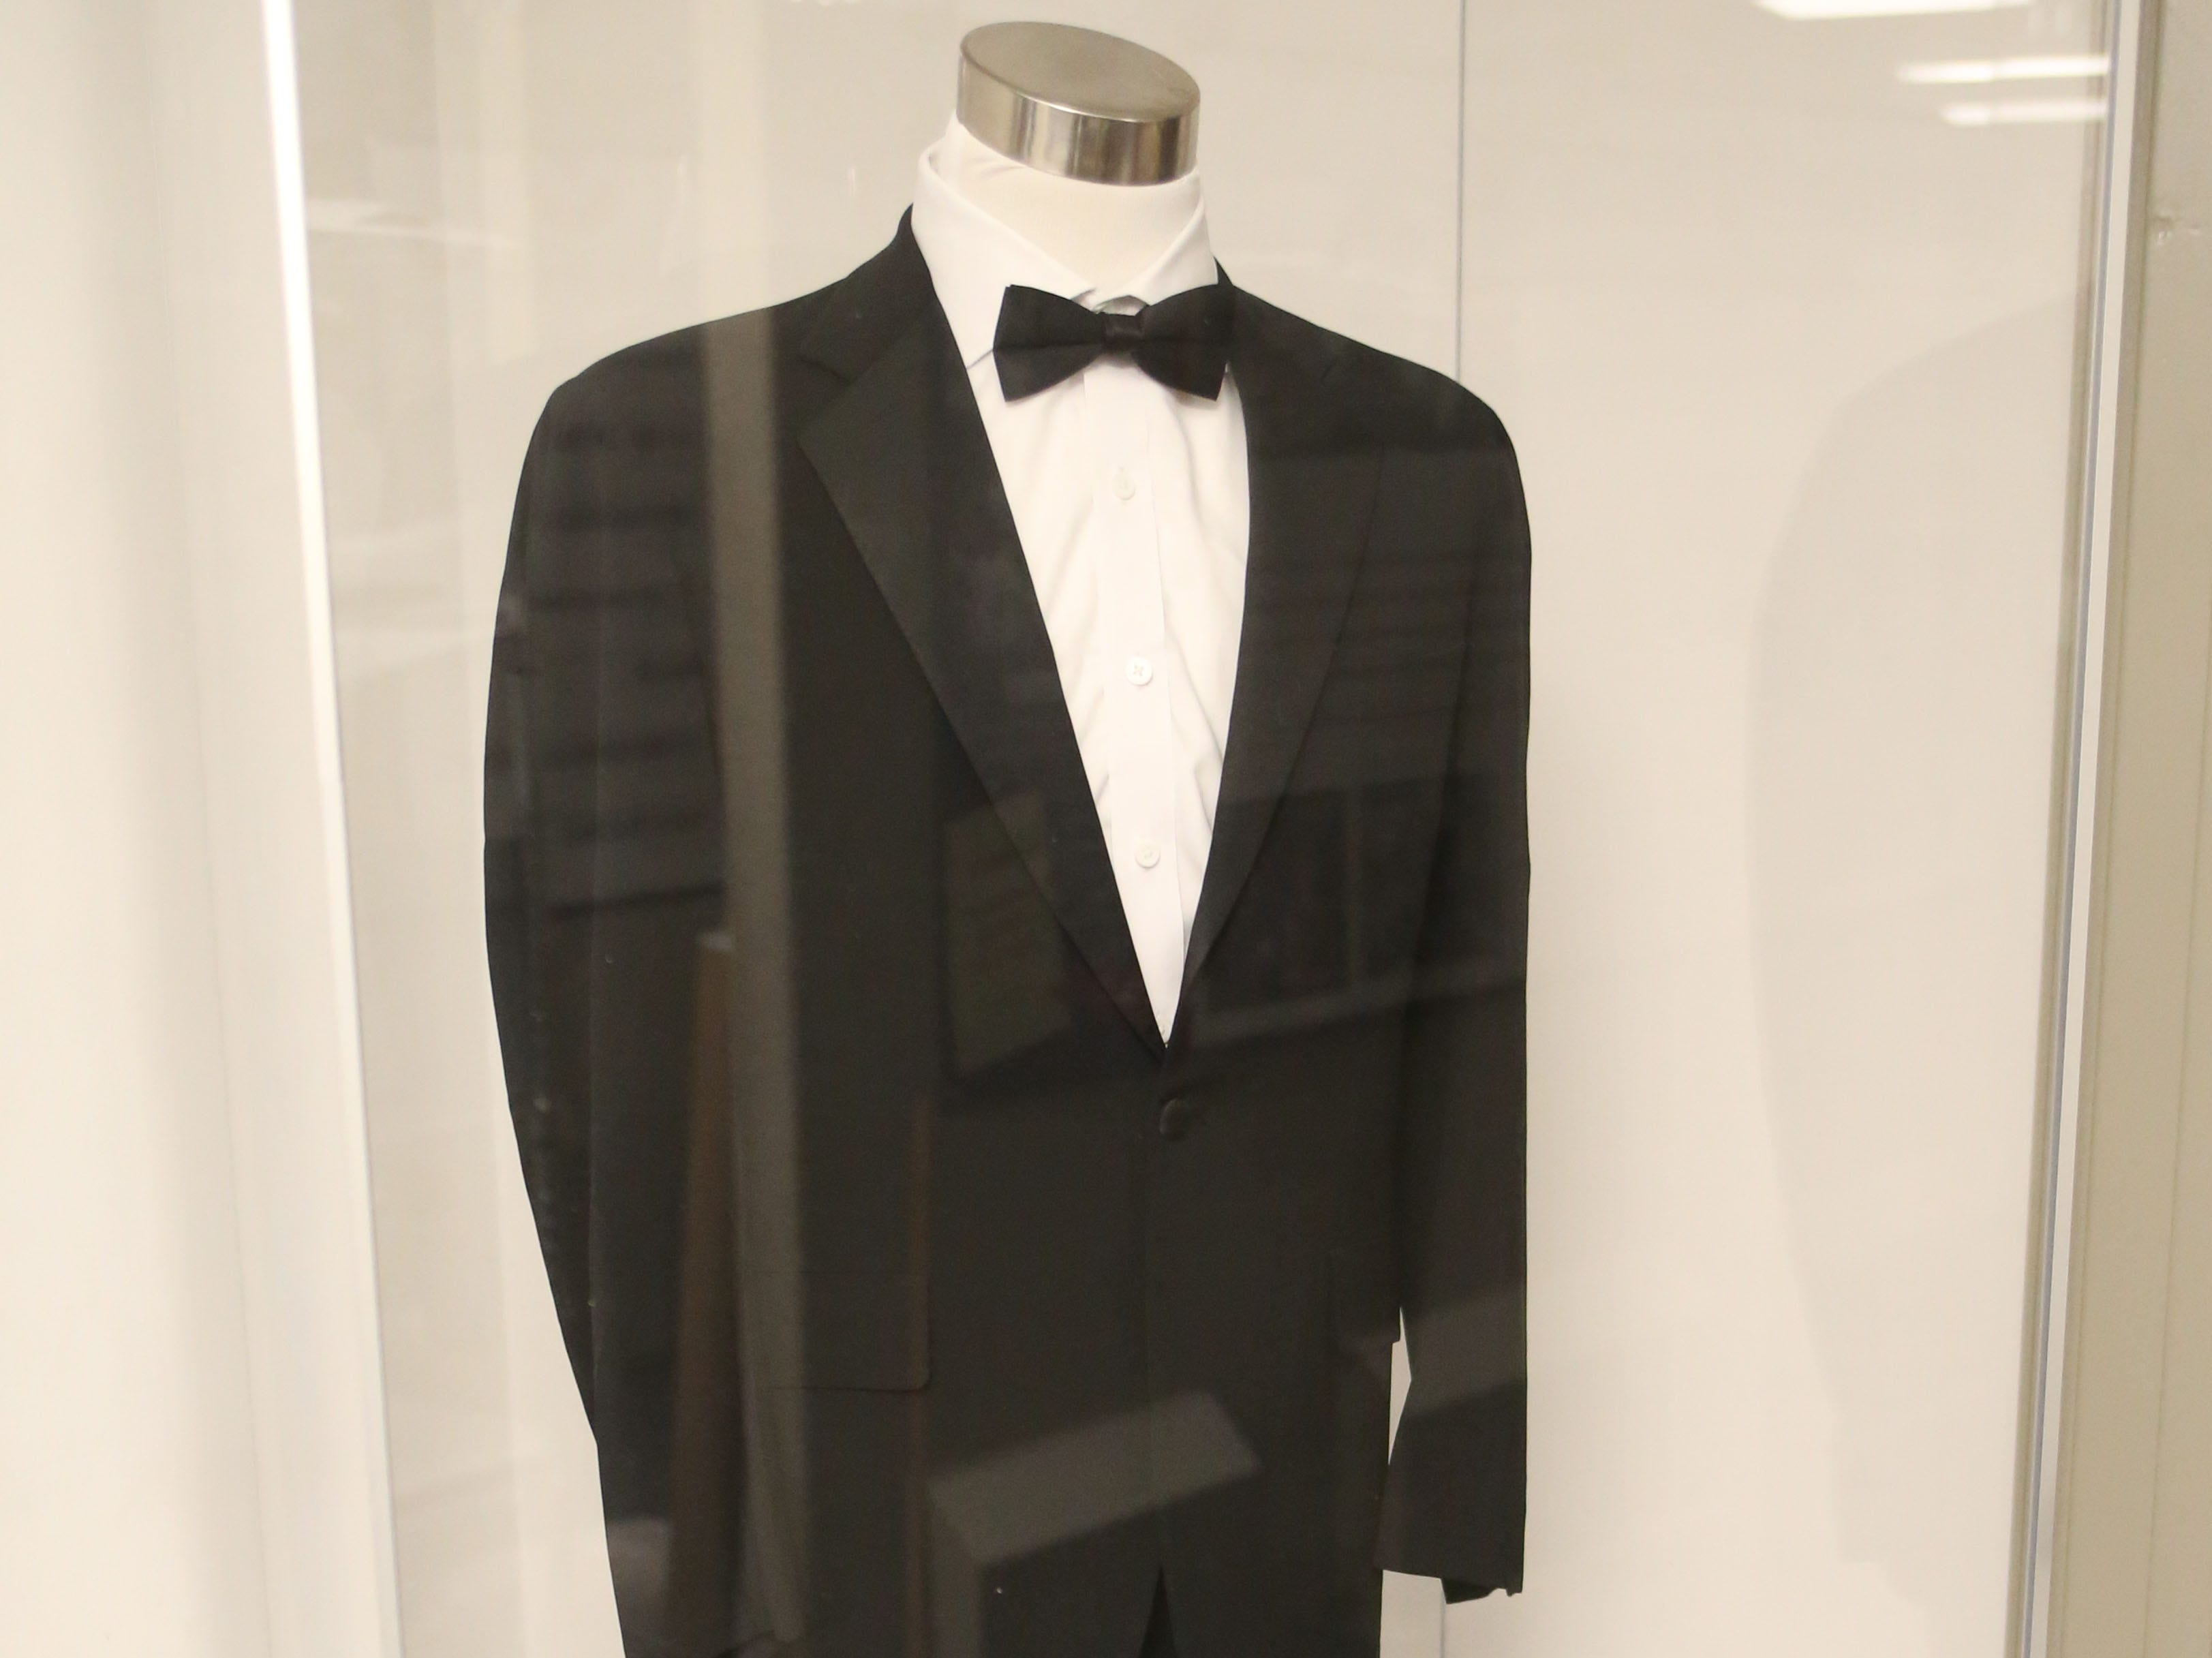 The Tallahassee historic Capitol hosts an exhibit on inaugurations of years past, Wednesday, Nov. 28, 2018. Displayed is former governor,  Bob Martinez's tuxedo which he wore to the inaugural ball.